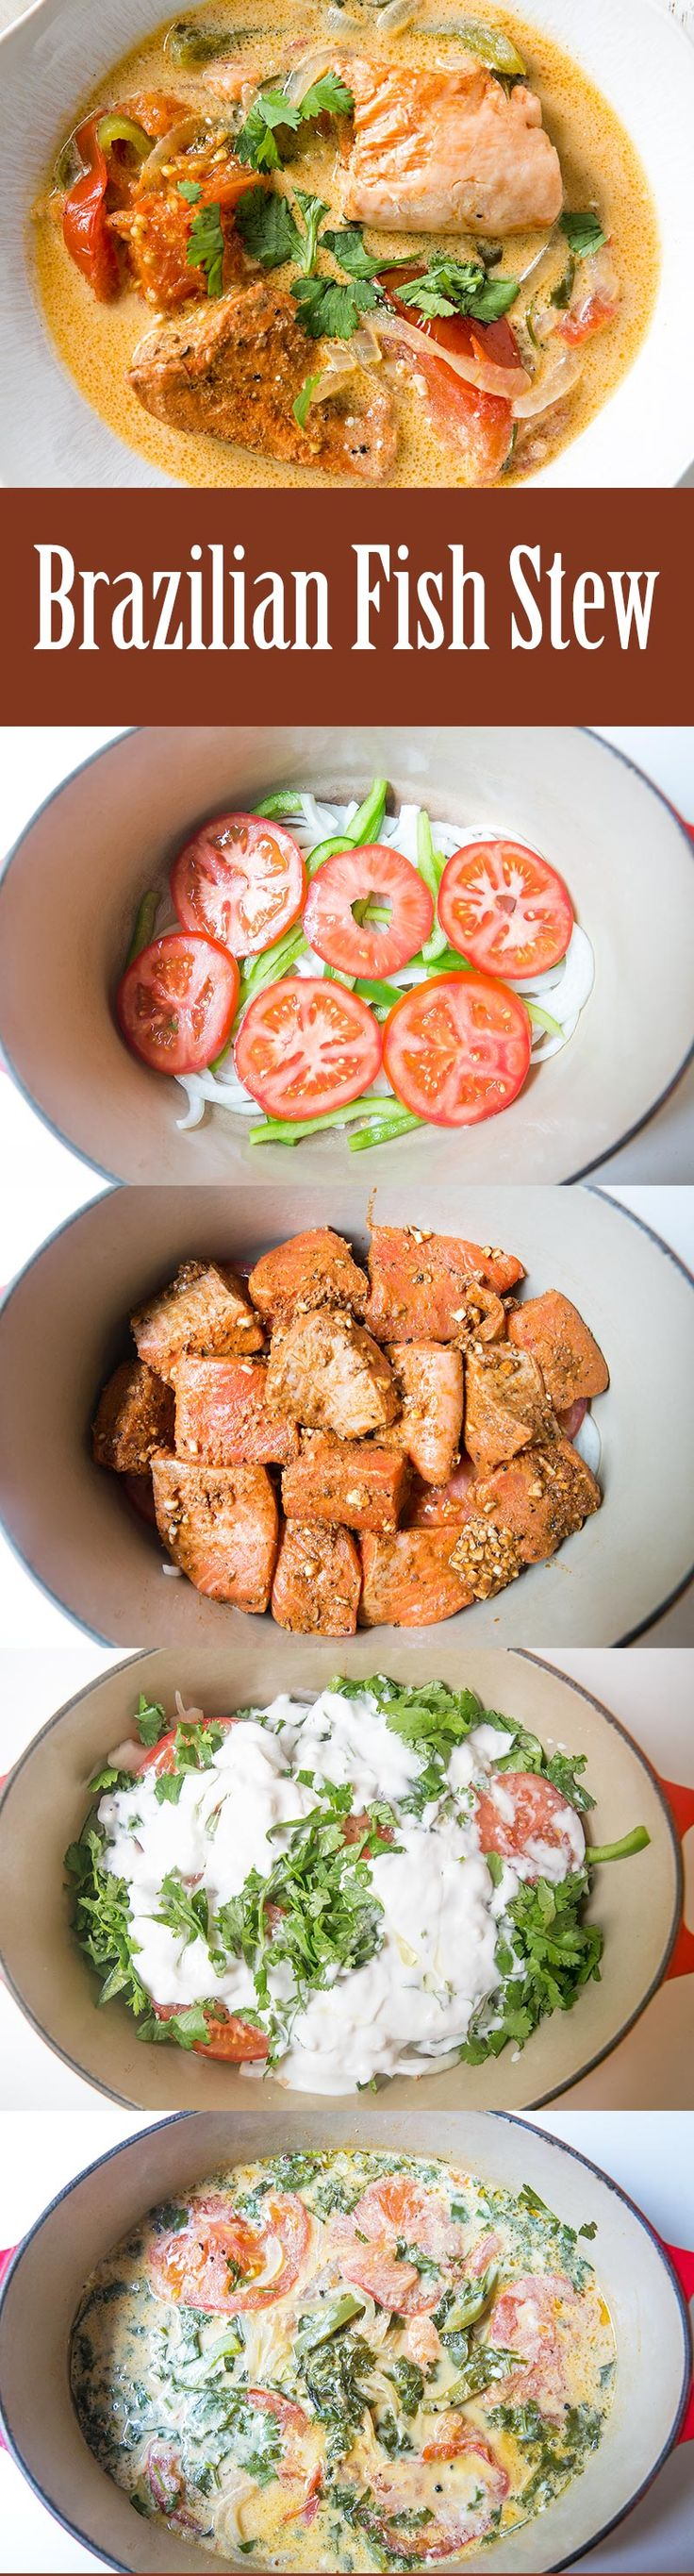 Brazilian salmon fish stew! Salmon cooked with tomatoes, bell peppers, onions, and coconut milk. So amazingly good! On SimplyRecipes.com